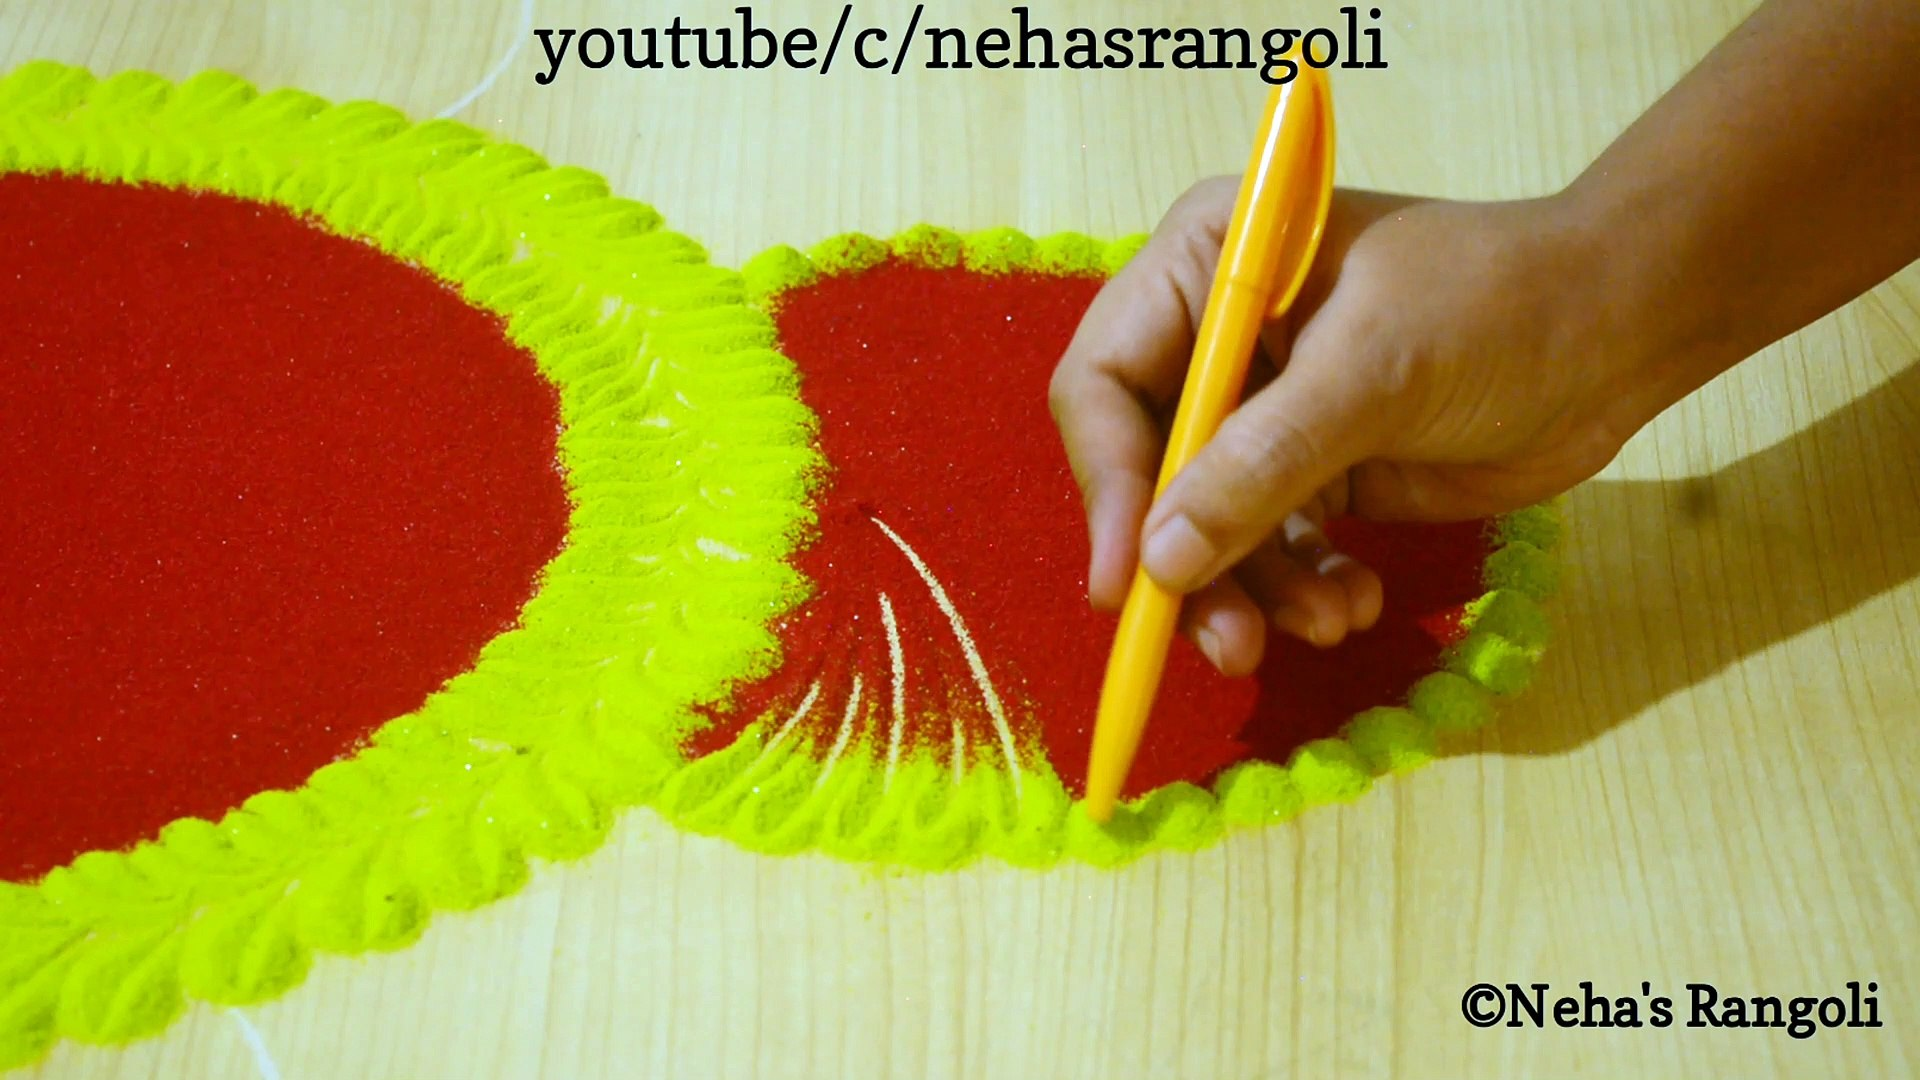 Happy New Year 2020 | Easy And Attractive Rangoli Design For New Year 2020 |आसान रंगोली डिजाईन २०२०